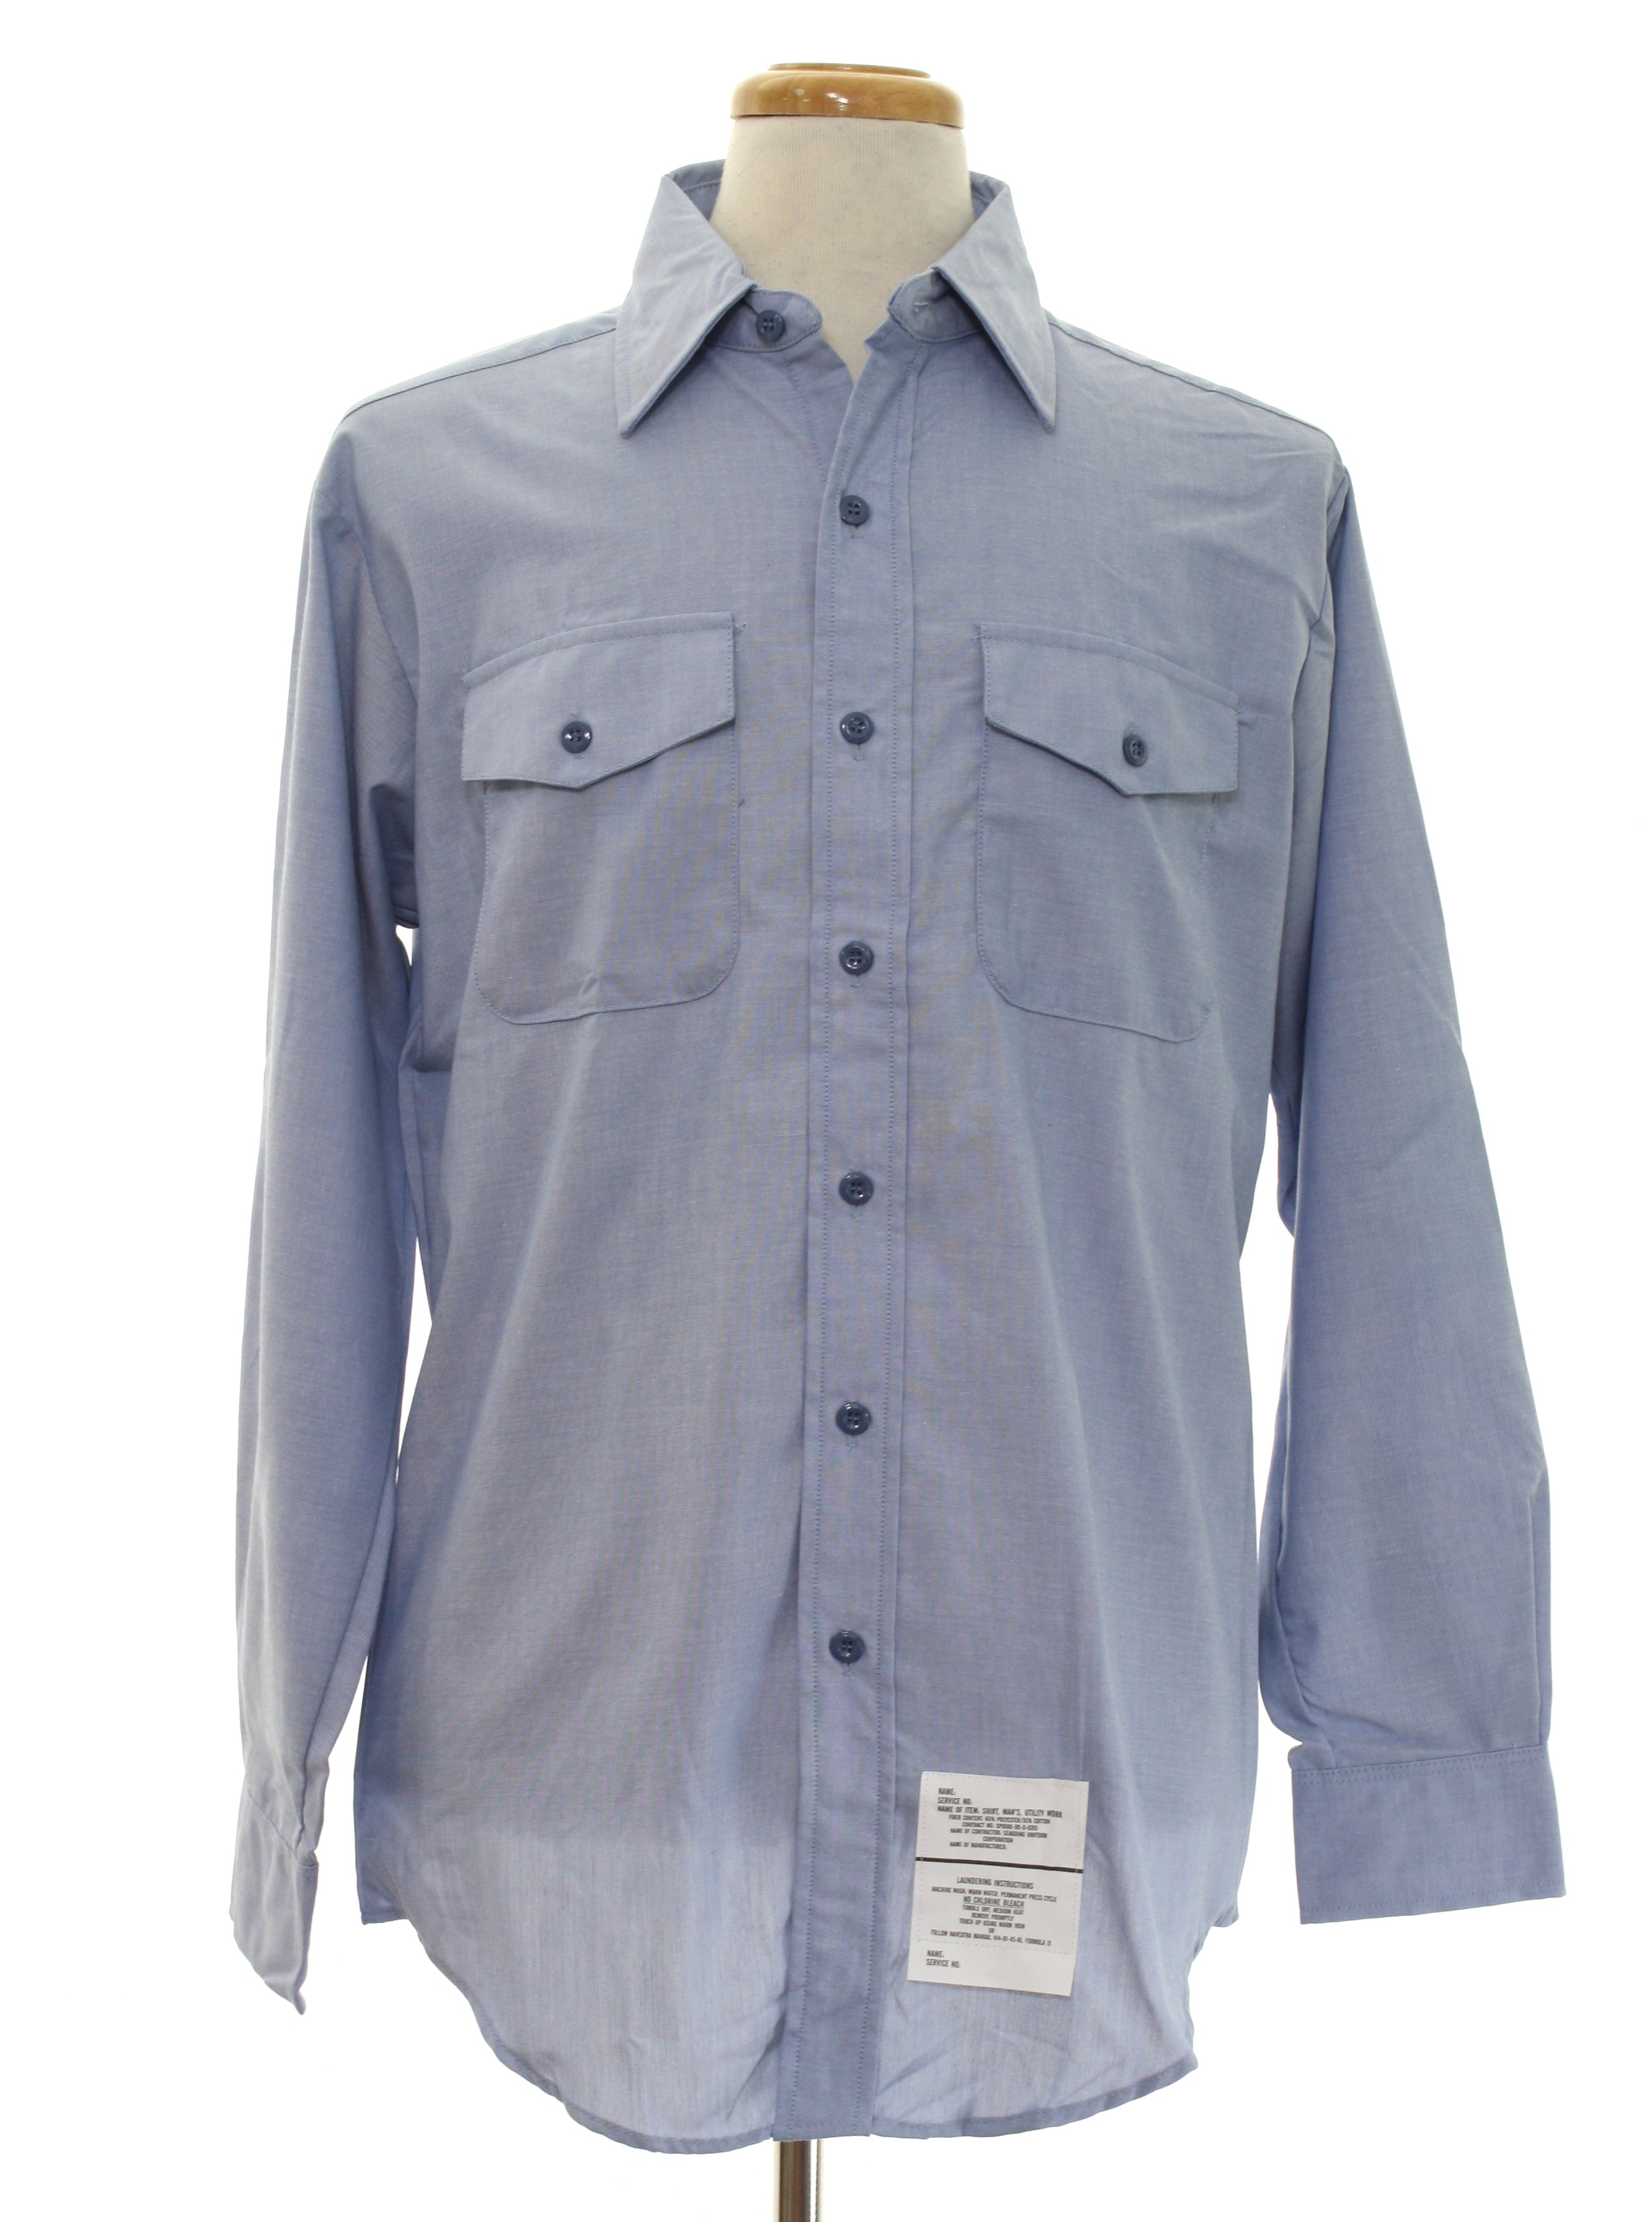 80 39 s seagoing uniform corp shirt 80s seagoing uniform for Blue cotton work shirts